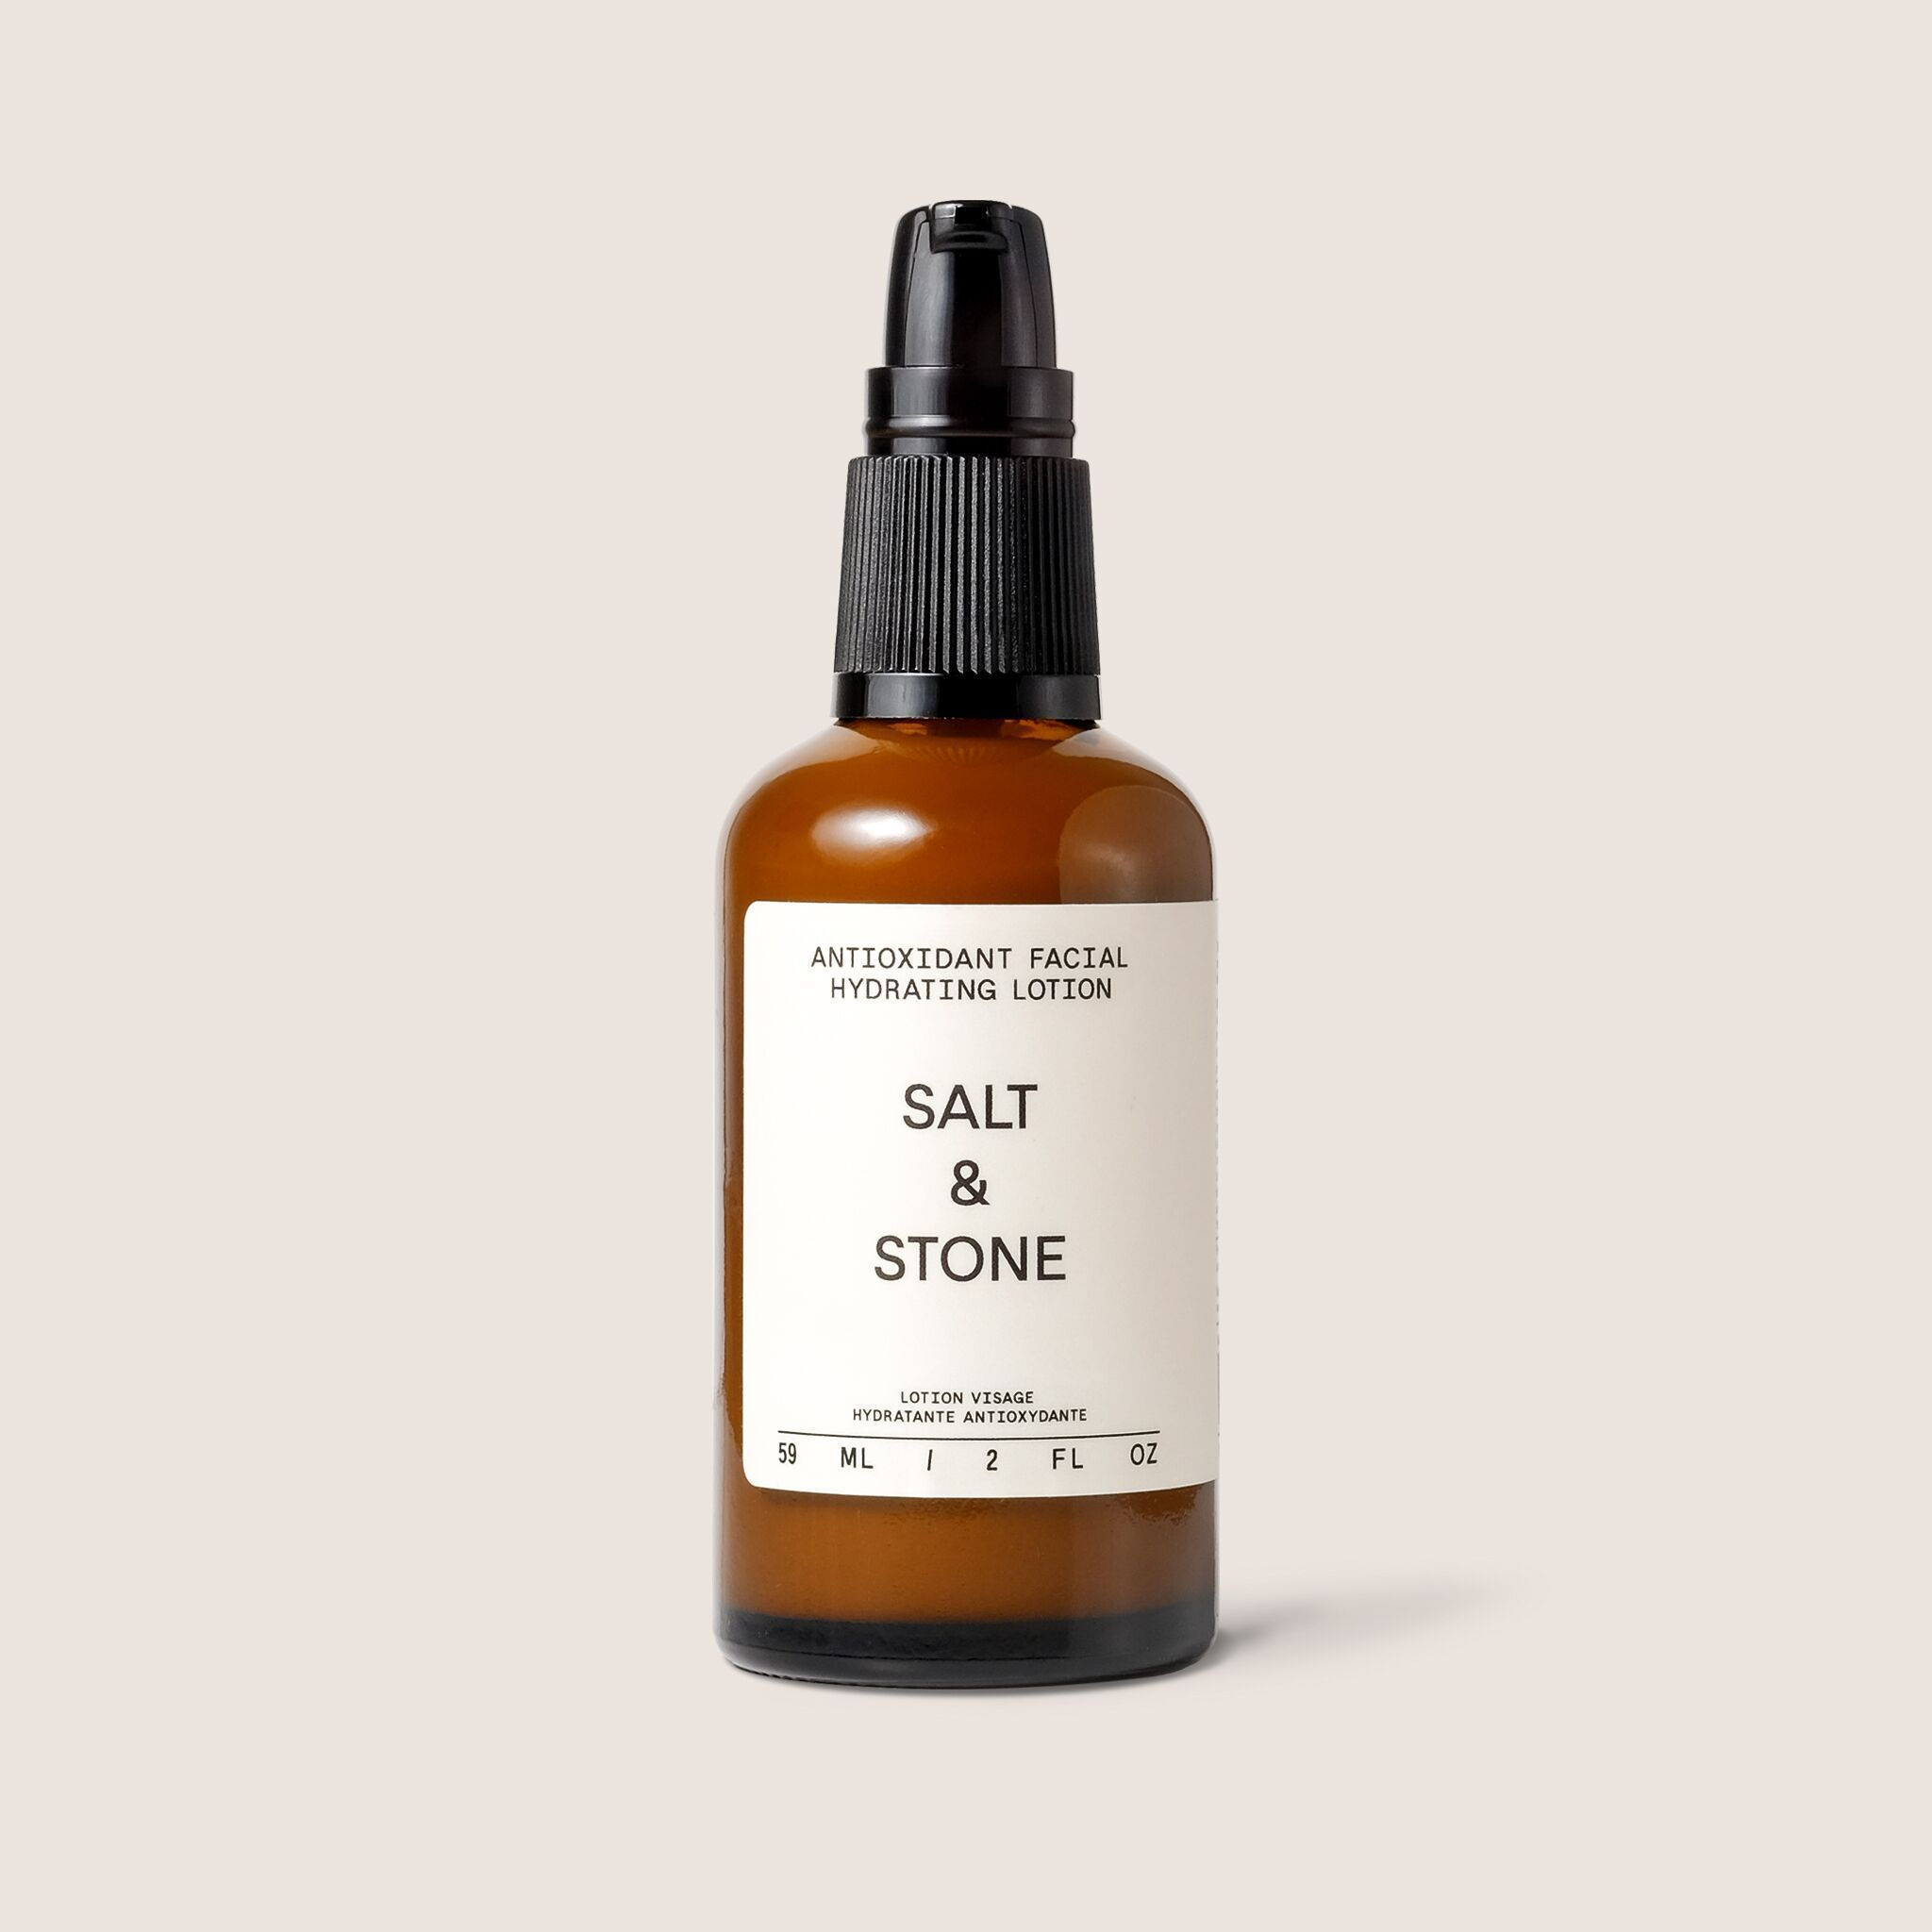 Load image into Gallery viewer, Antioxidant Facial Hydrating Lotion, Salt & Stone - Bohemian Mama